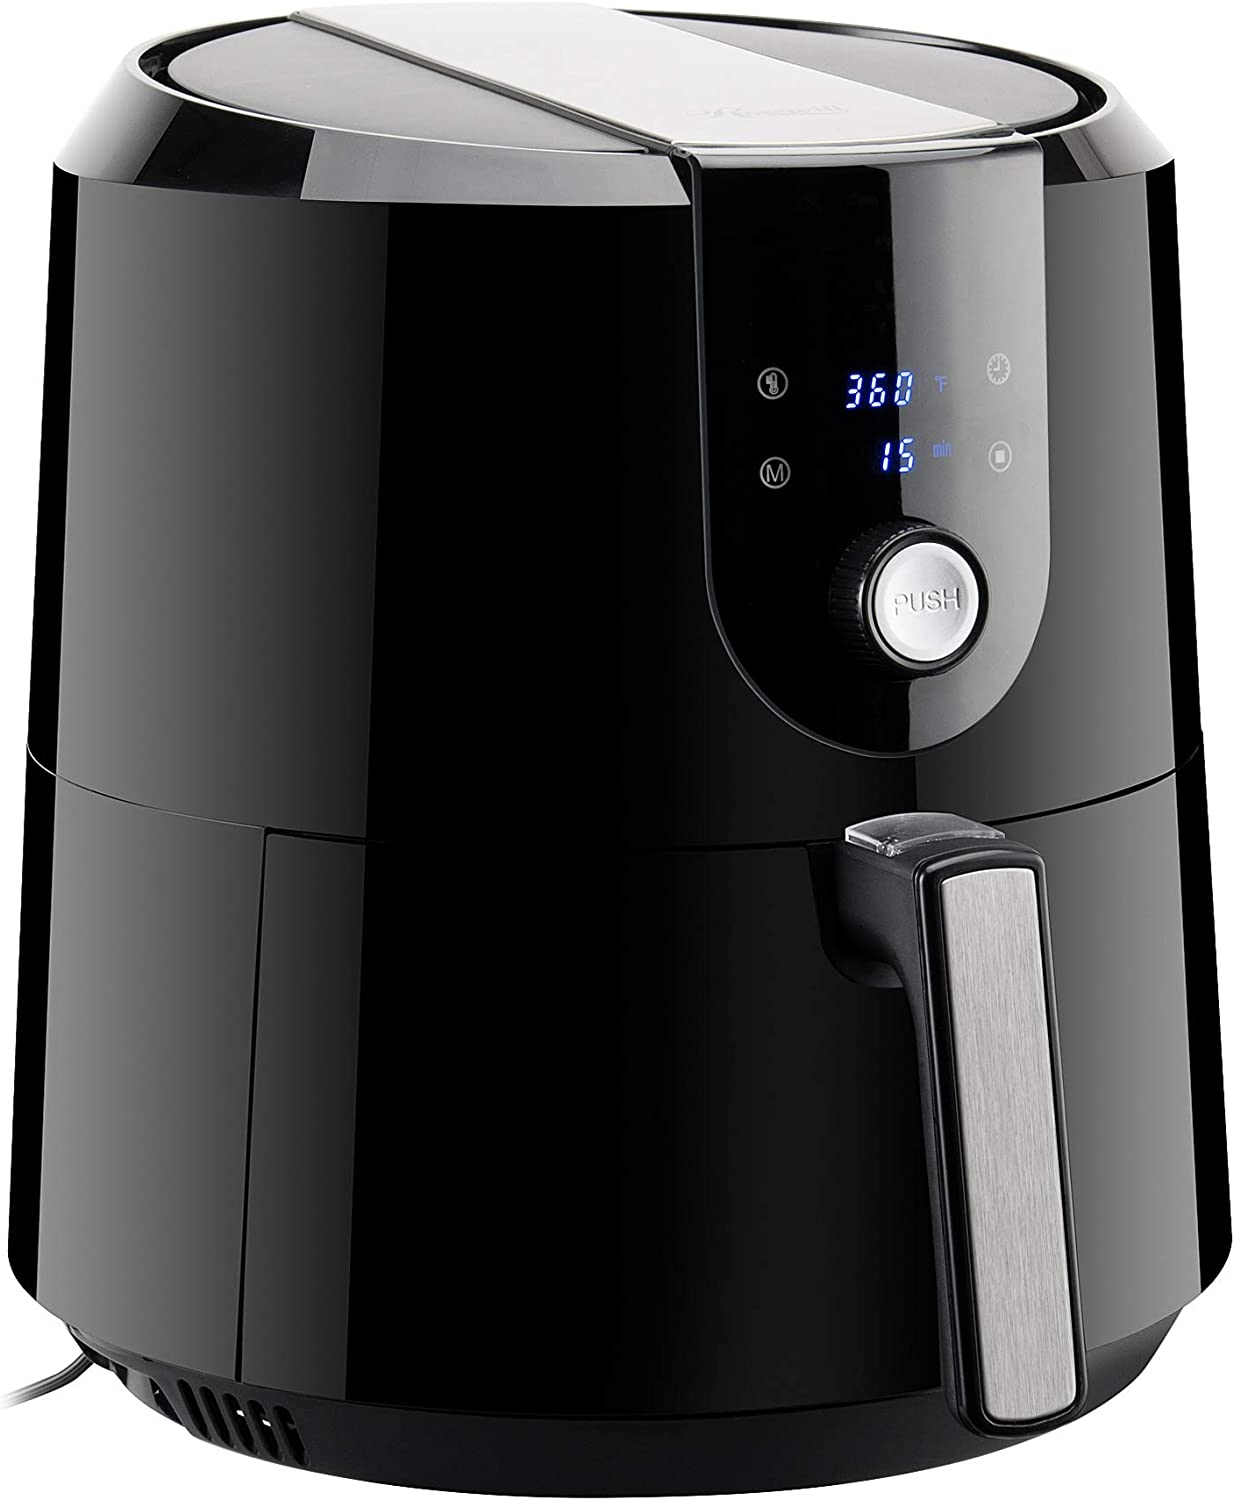 Rosewill RHAF-19001 XL Air Fryer 5.8-Quart (5.5-Liter) Extra Large Capacity with Temperature/Timer Settings and 7 Cooking Presets, 1800W Oil-Less Low-Fat Air Frying